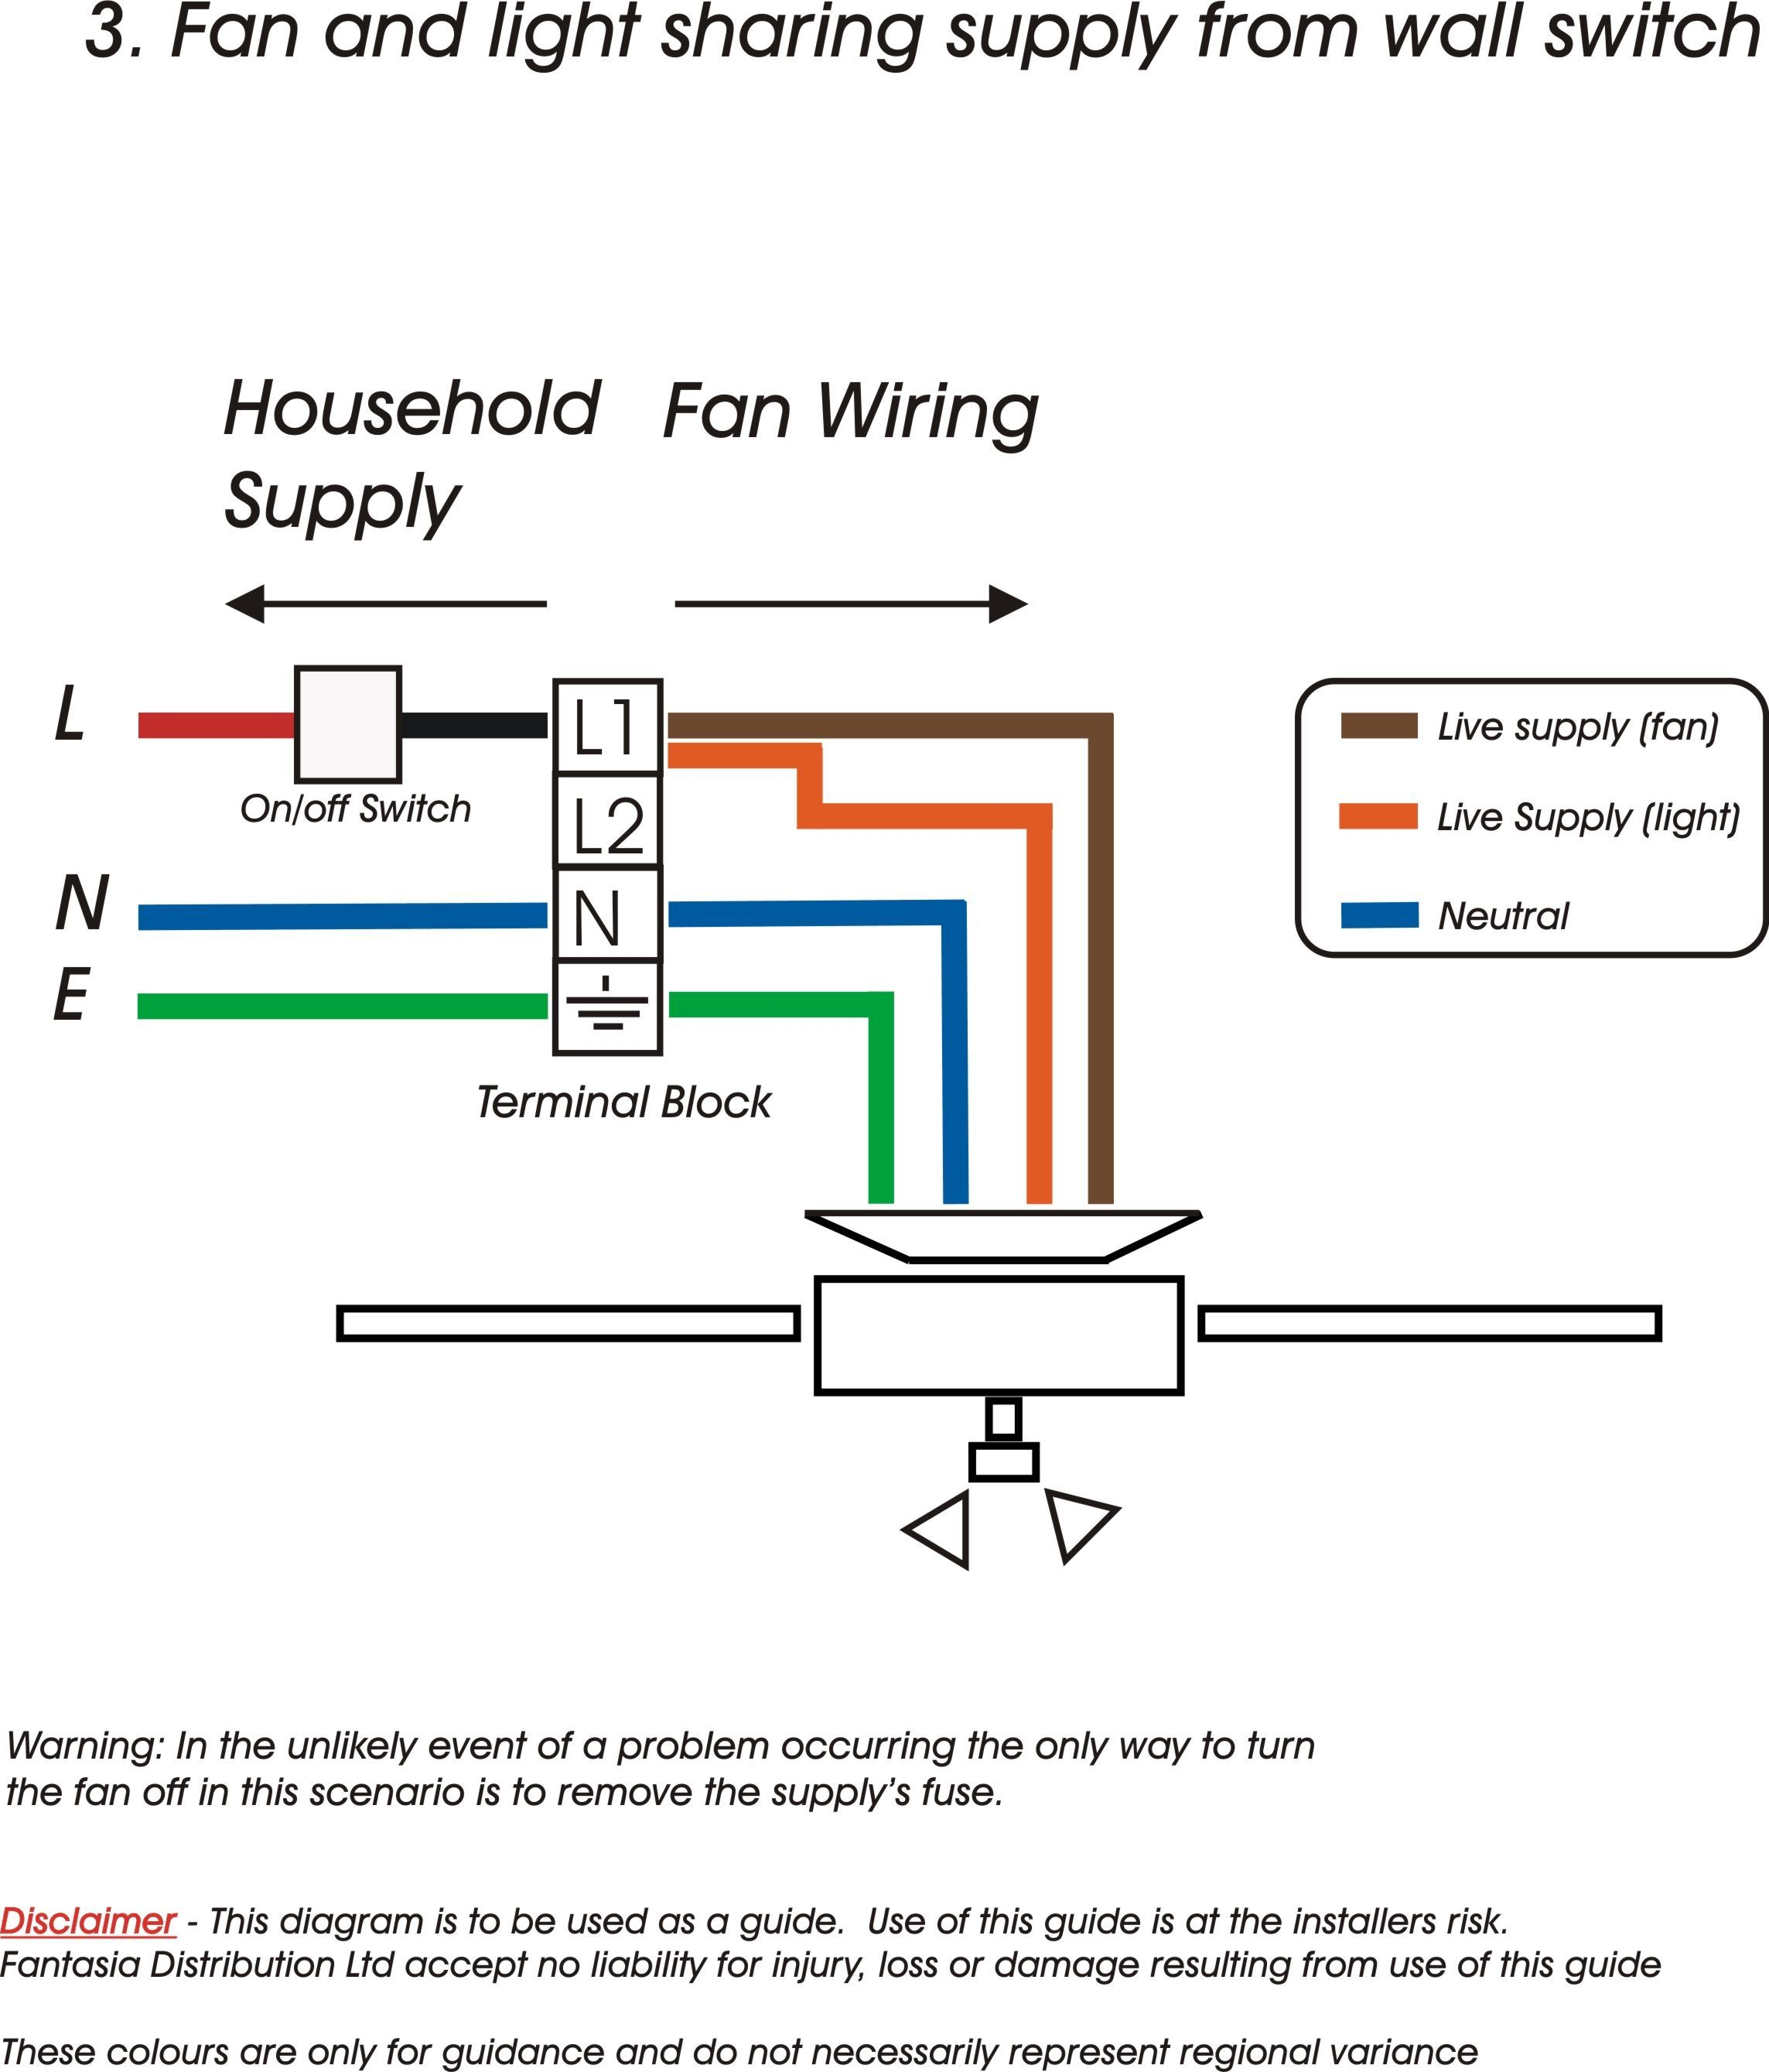 a6e72fabacaaa74231f750a53a3d3cb0 ceiling fan wall switch wiring diagram ladysro info quiet cool wiring diagram at crackthecode.co